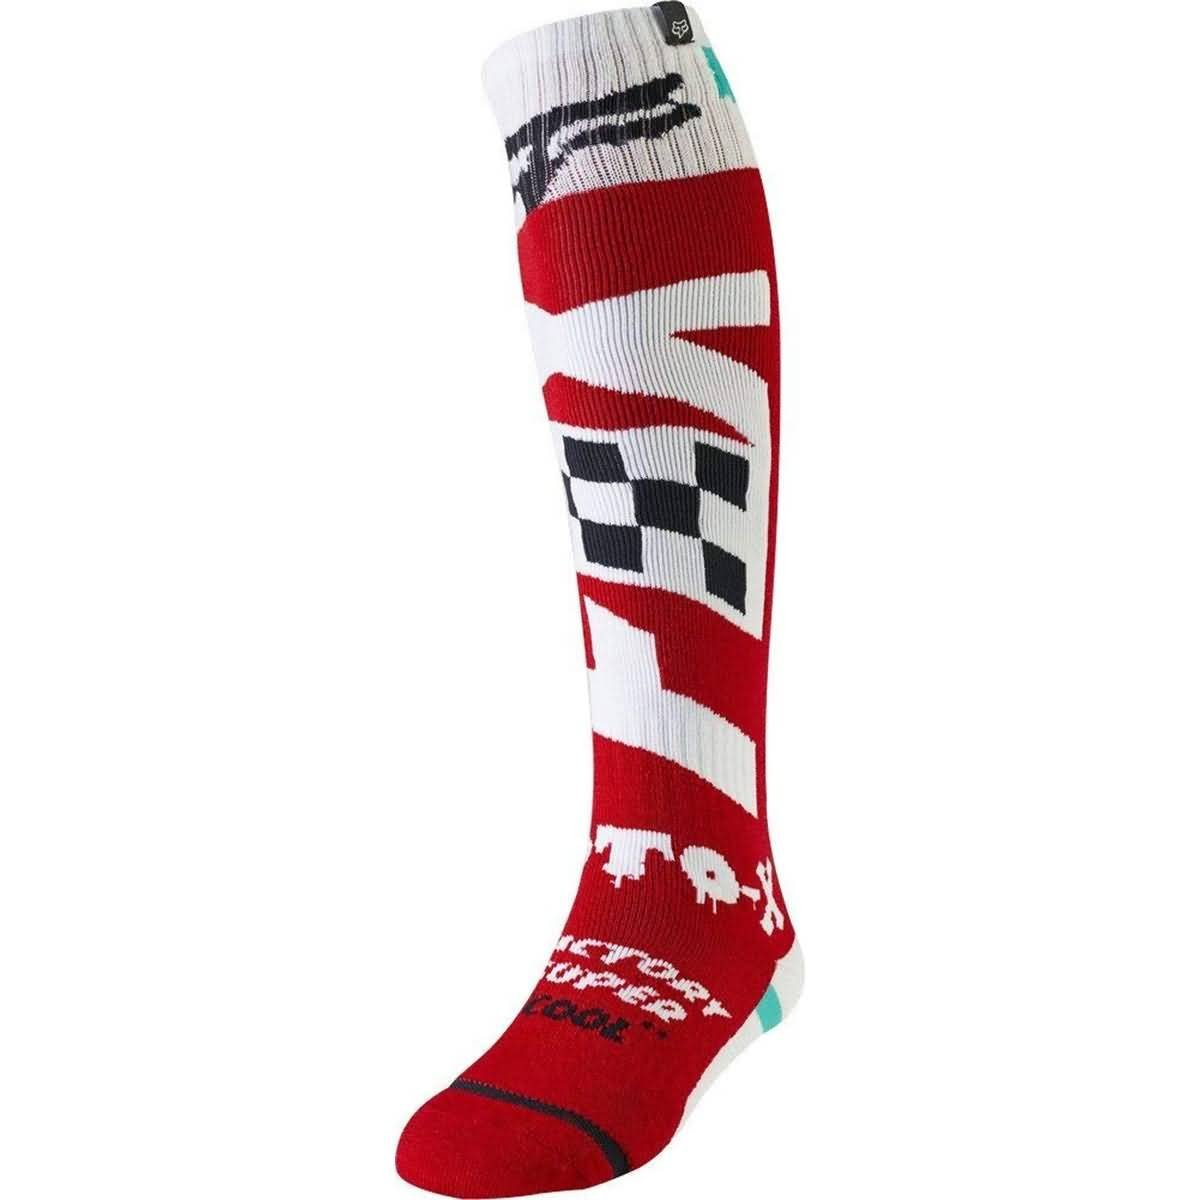 Fox Racing 2019 FRI Thin Socks - Czar (MEDIUM) (CARDINAL)